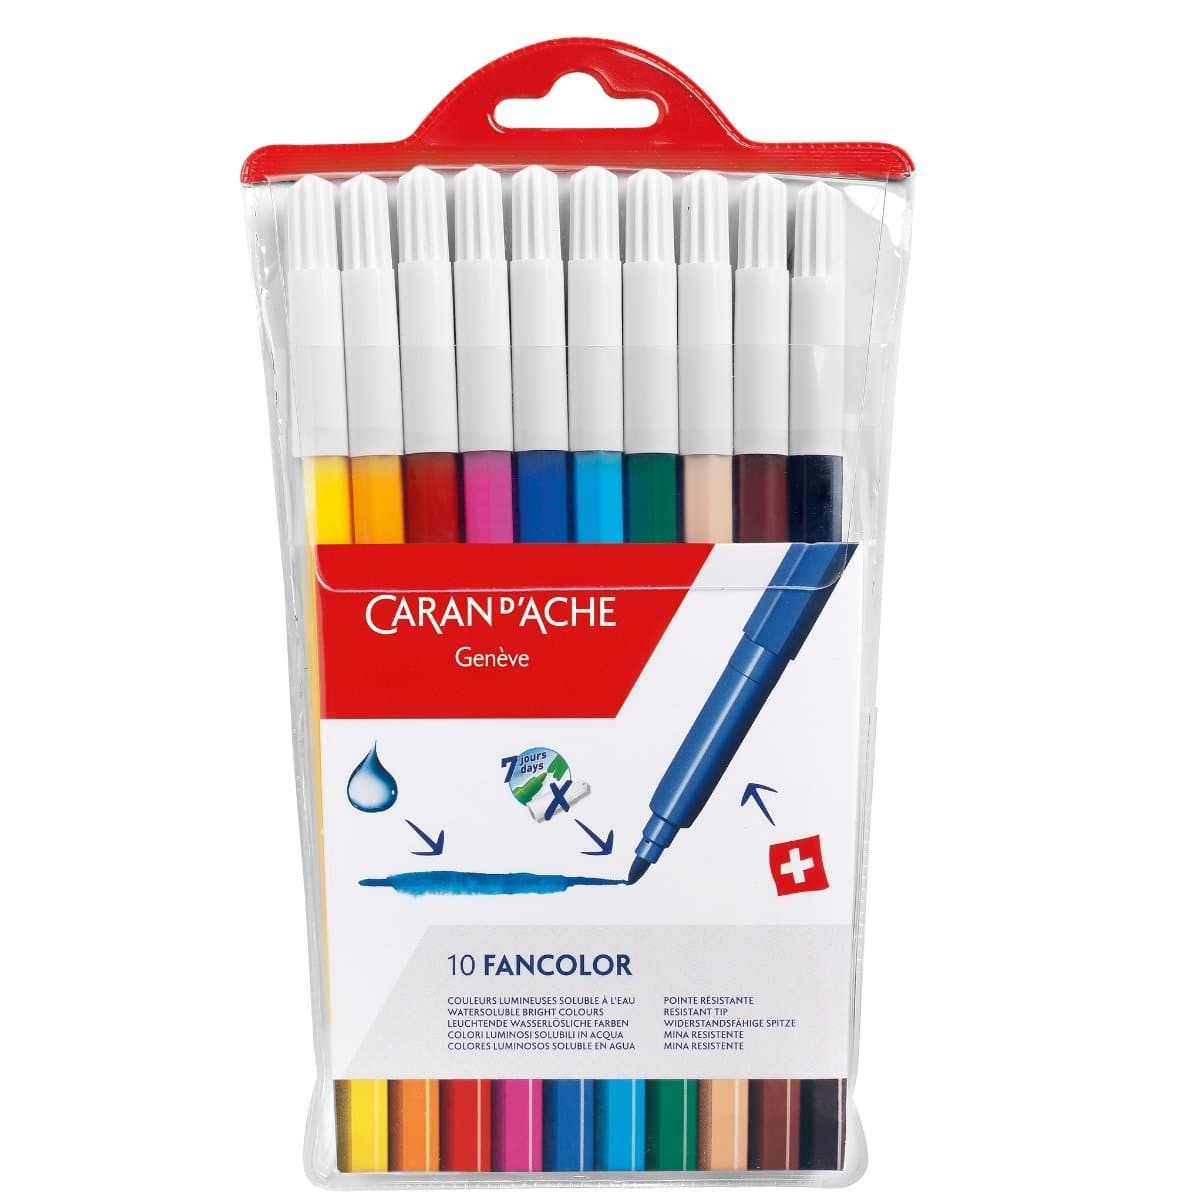 CARAN d'ACHE FANCOLOR Fibre-Tip Pen, medium, 10/pack